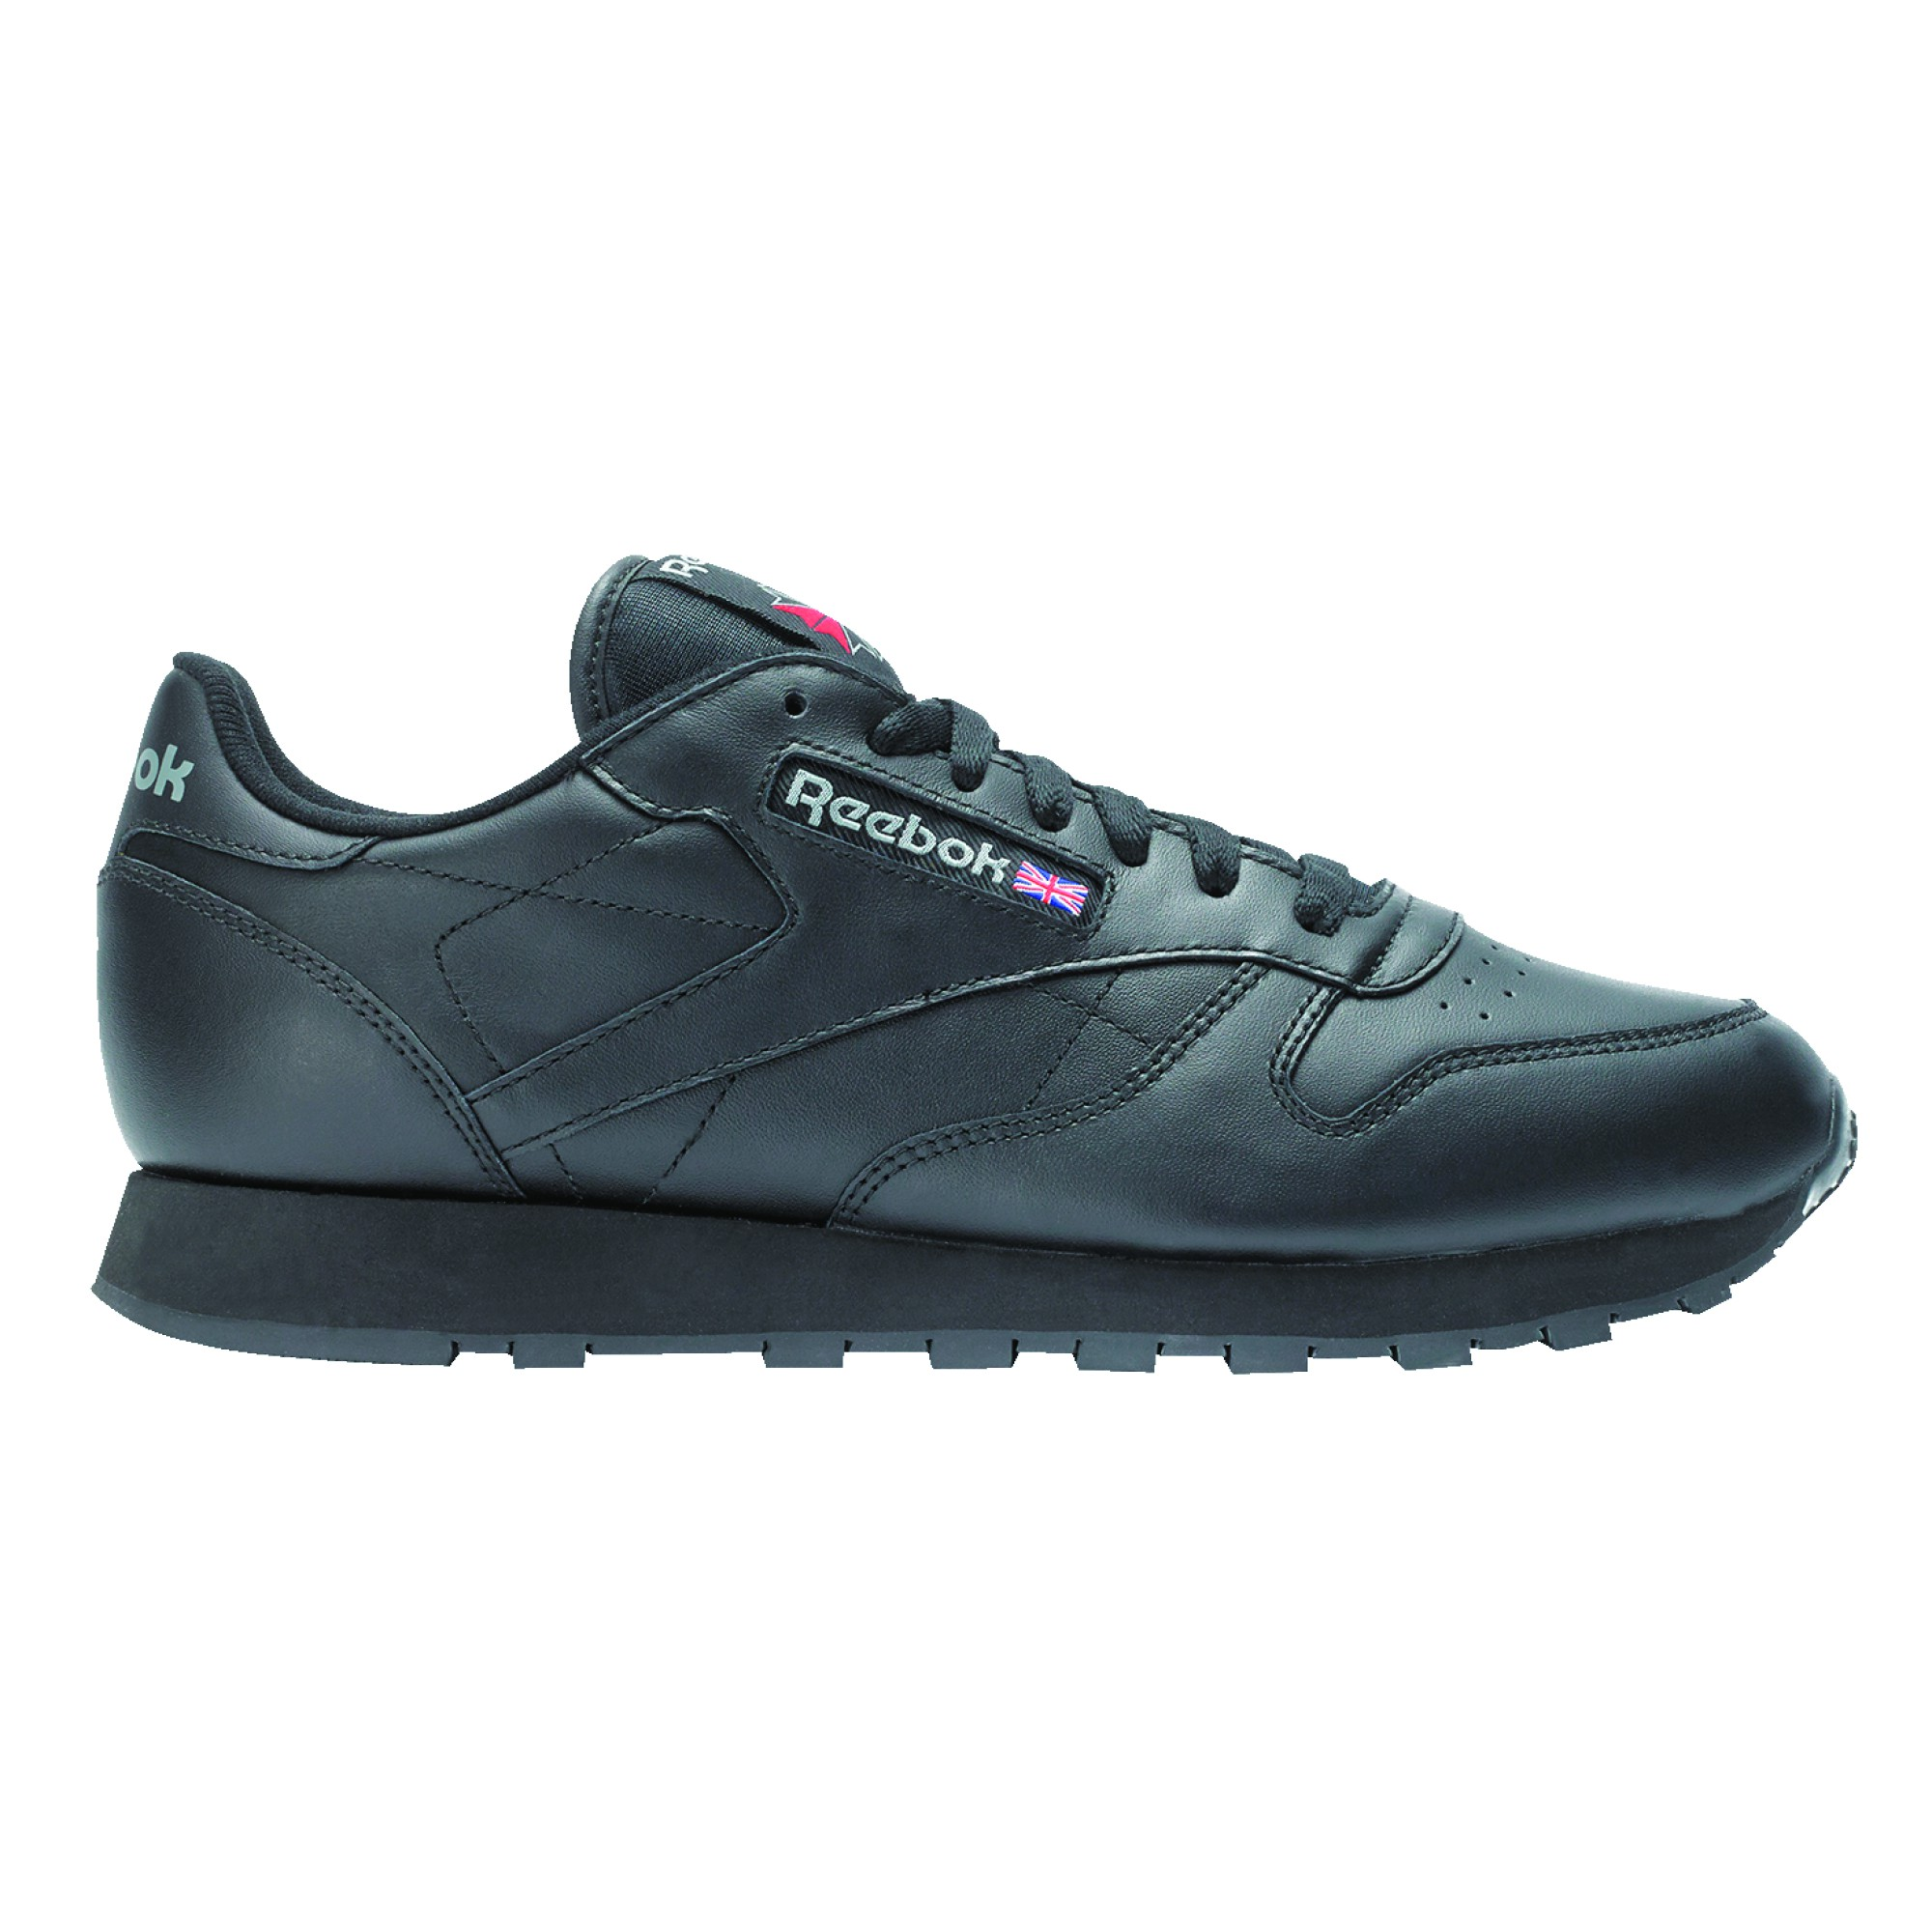 664b0bec4a3 Zapatillas Reebok Classic Leather